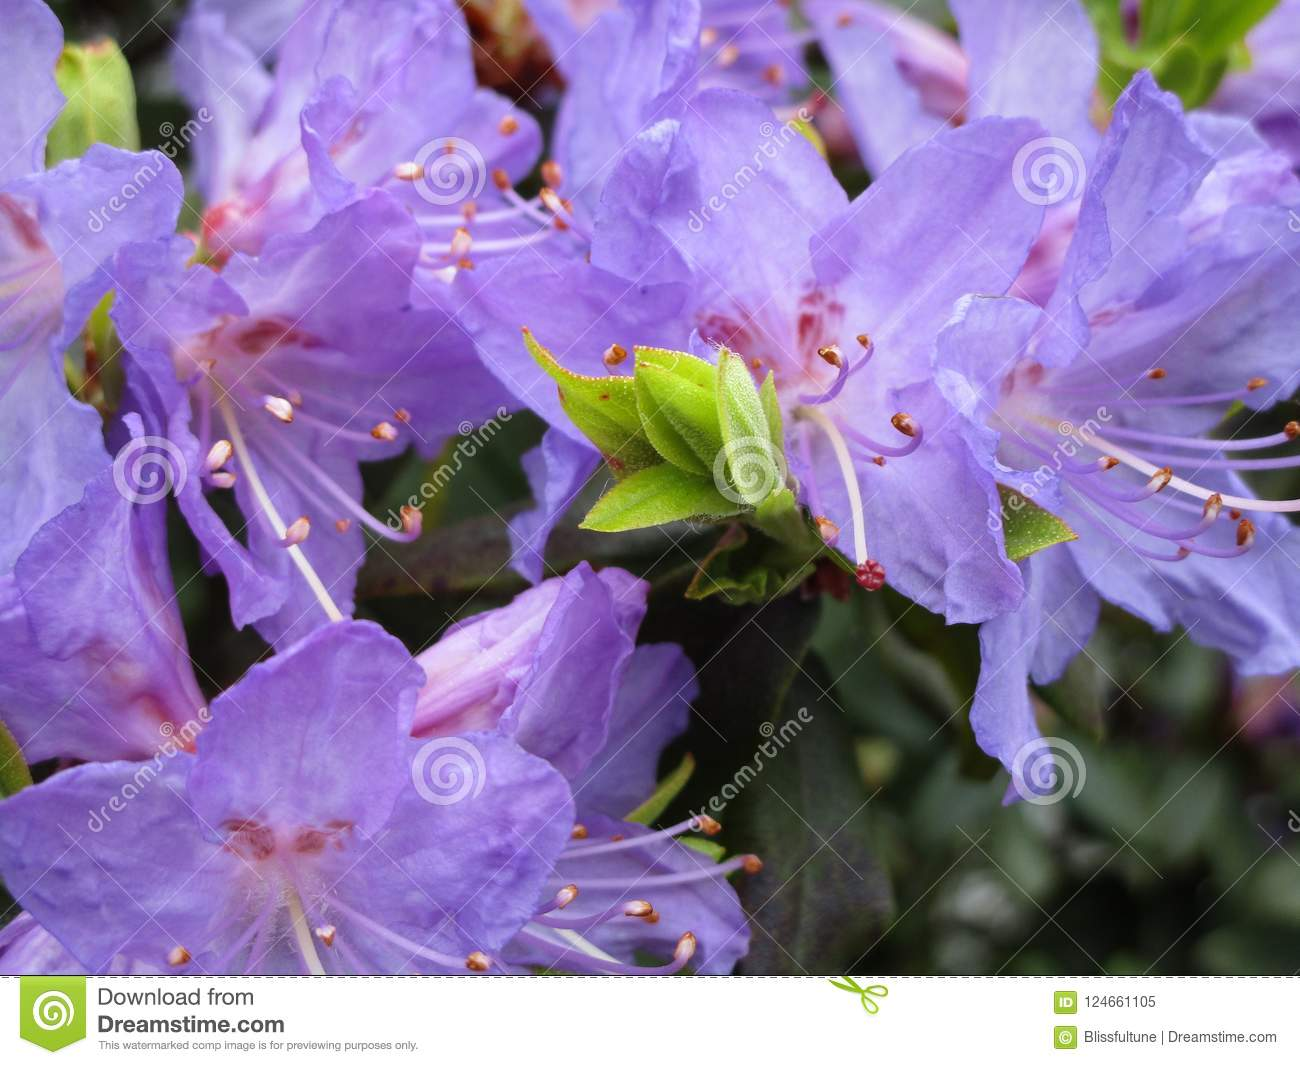 Bright purple lily flowers close up british columbia canada 2018 download bright purple lily flowers close up british columbia canada 2018 stock image izmirmasajfo